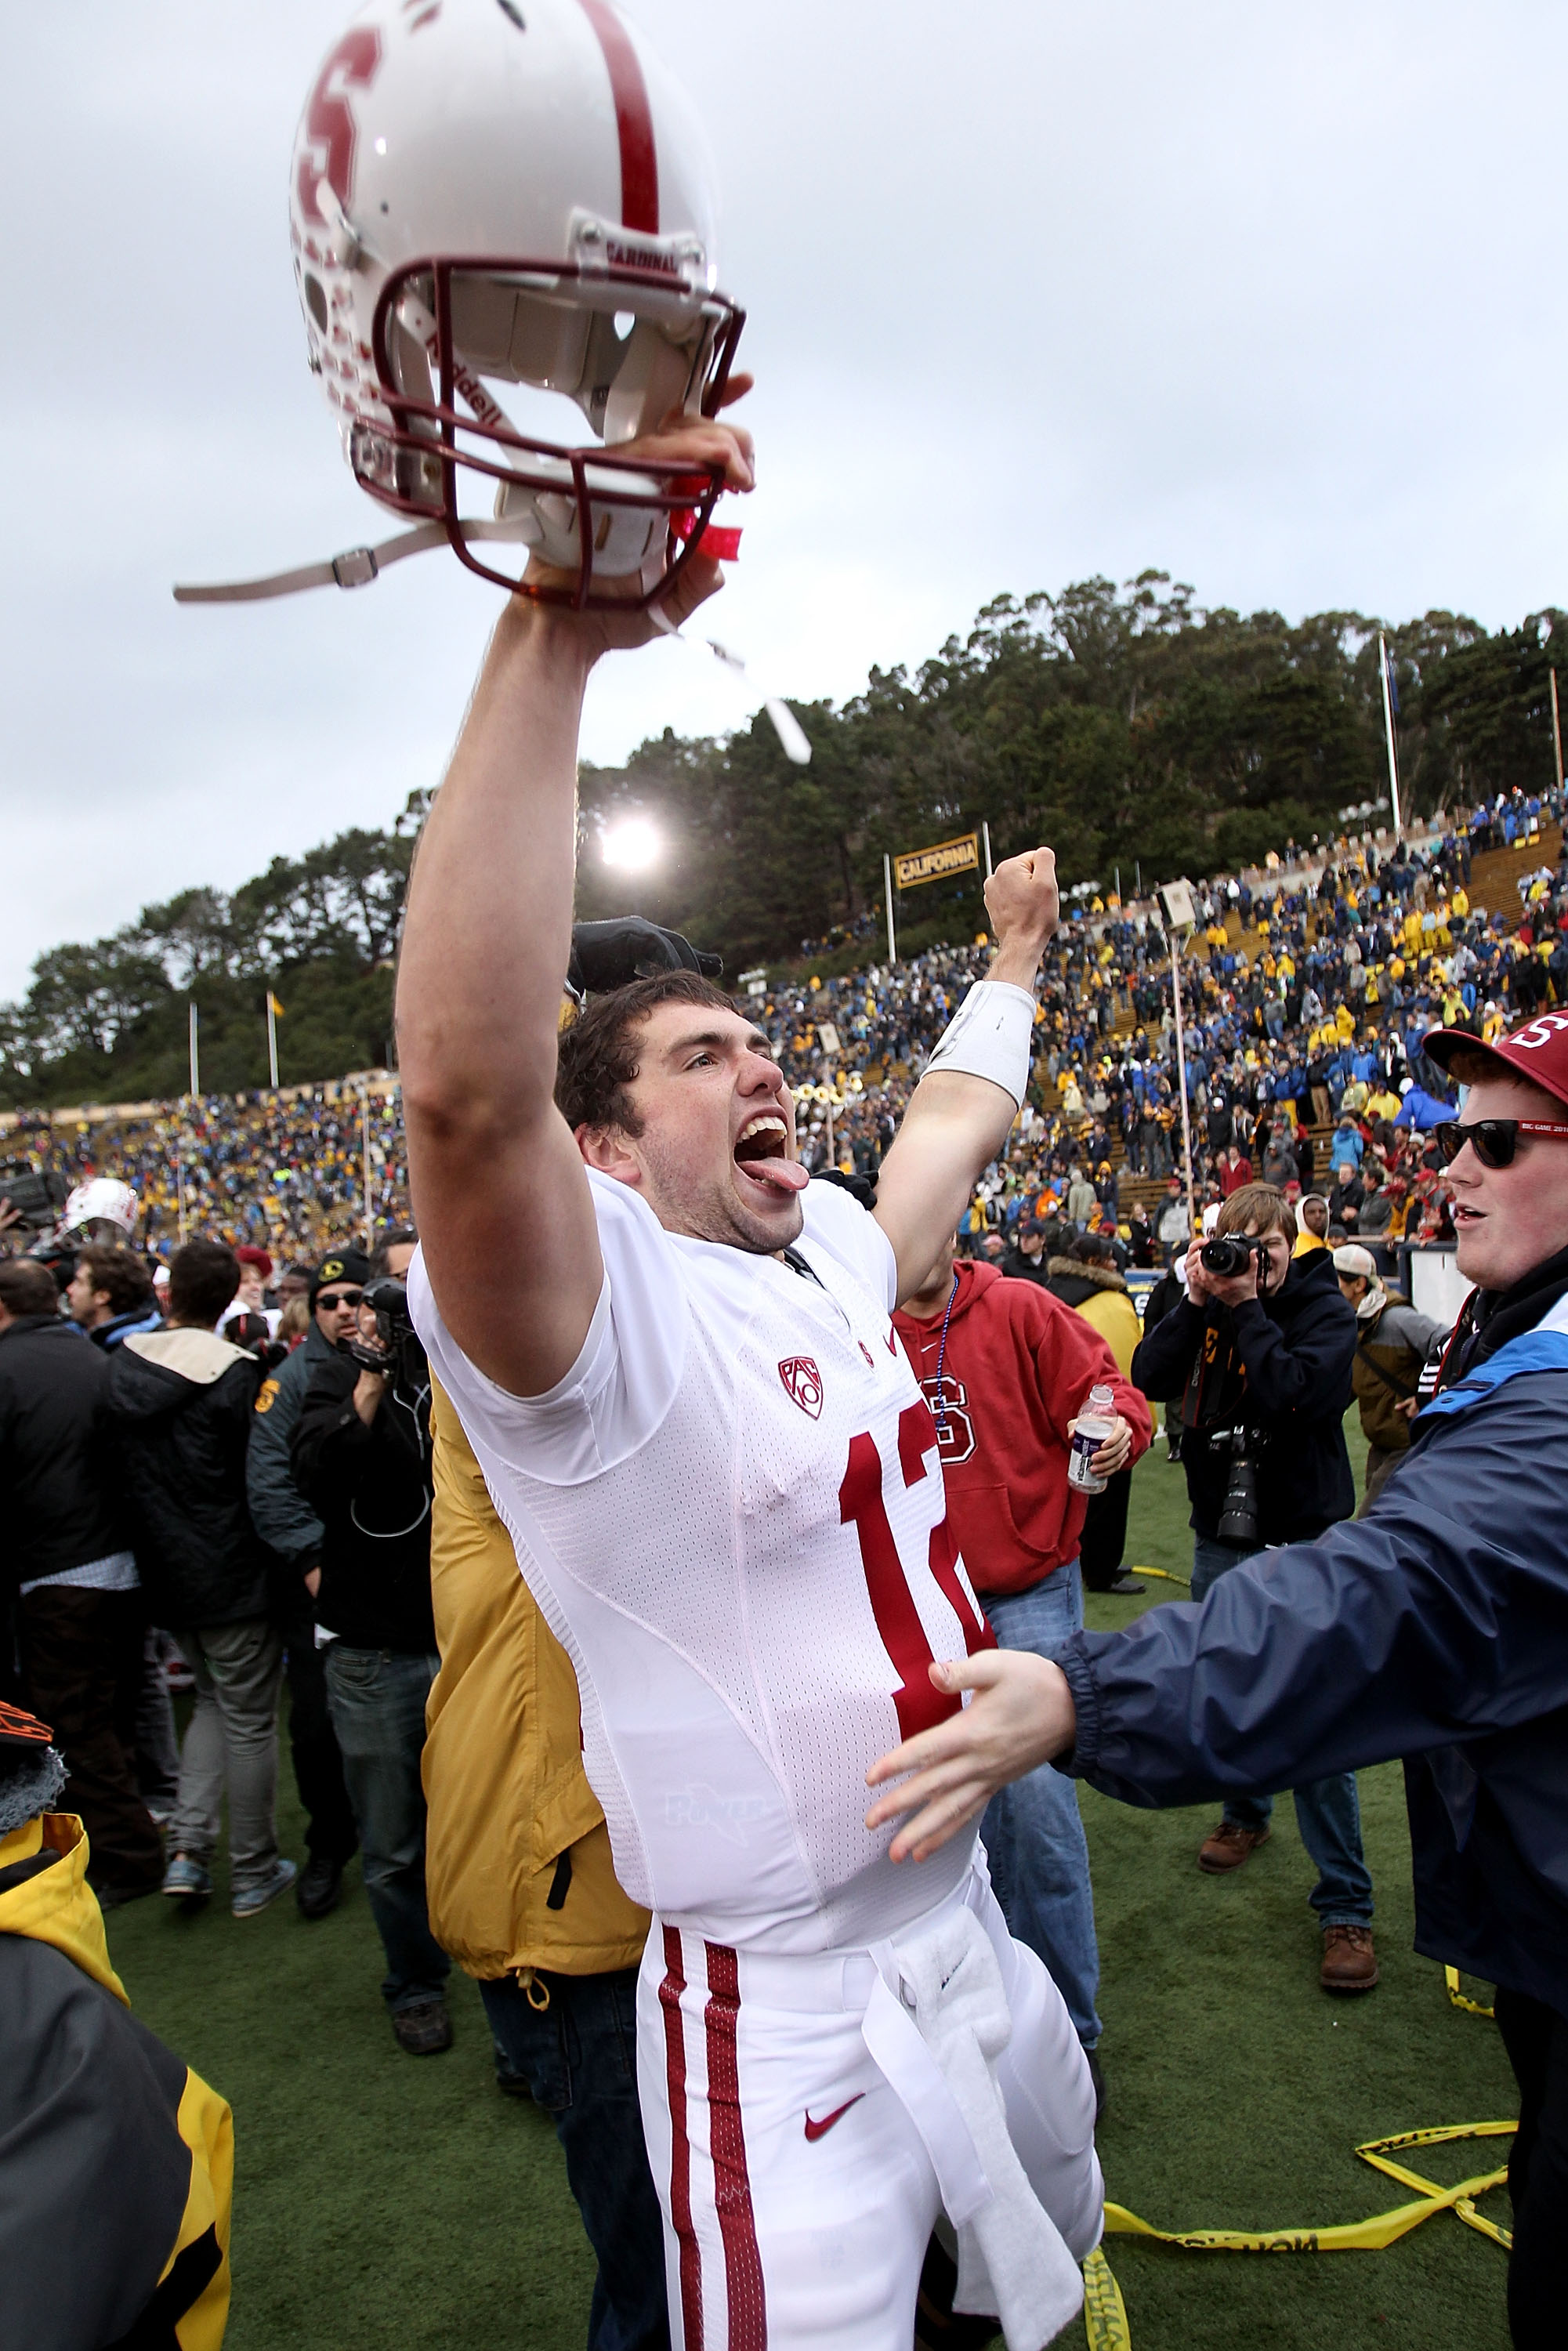 BERKELEY, CA - NOVEMBER 20:  Andrew Luck #12 of the Stanford Cardinal celebrates after beating the California Golden Bears at California Memorial Stadium on November 20, 2010 in Berkeley, California.  (Photo by Ezra Shaw/Getty Images)